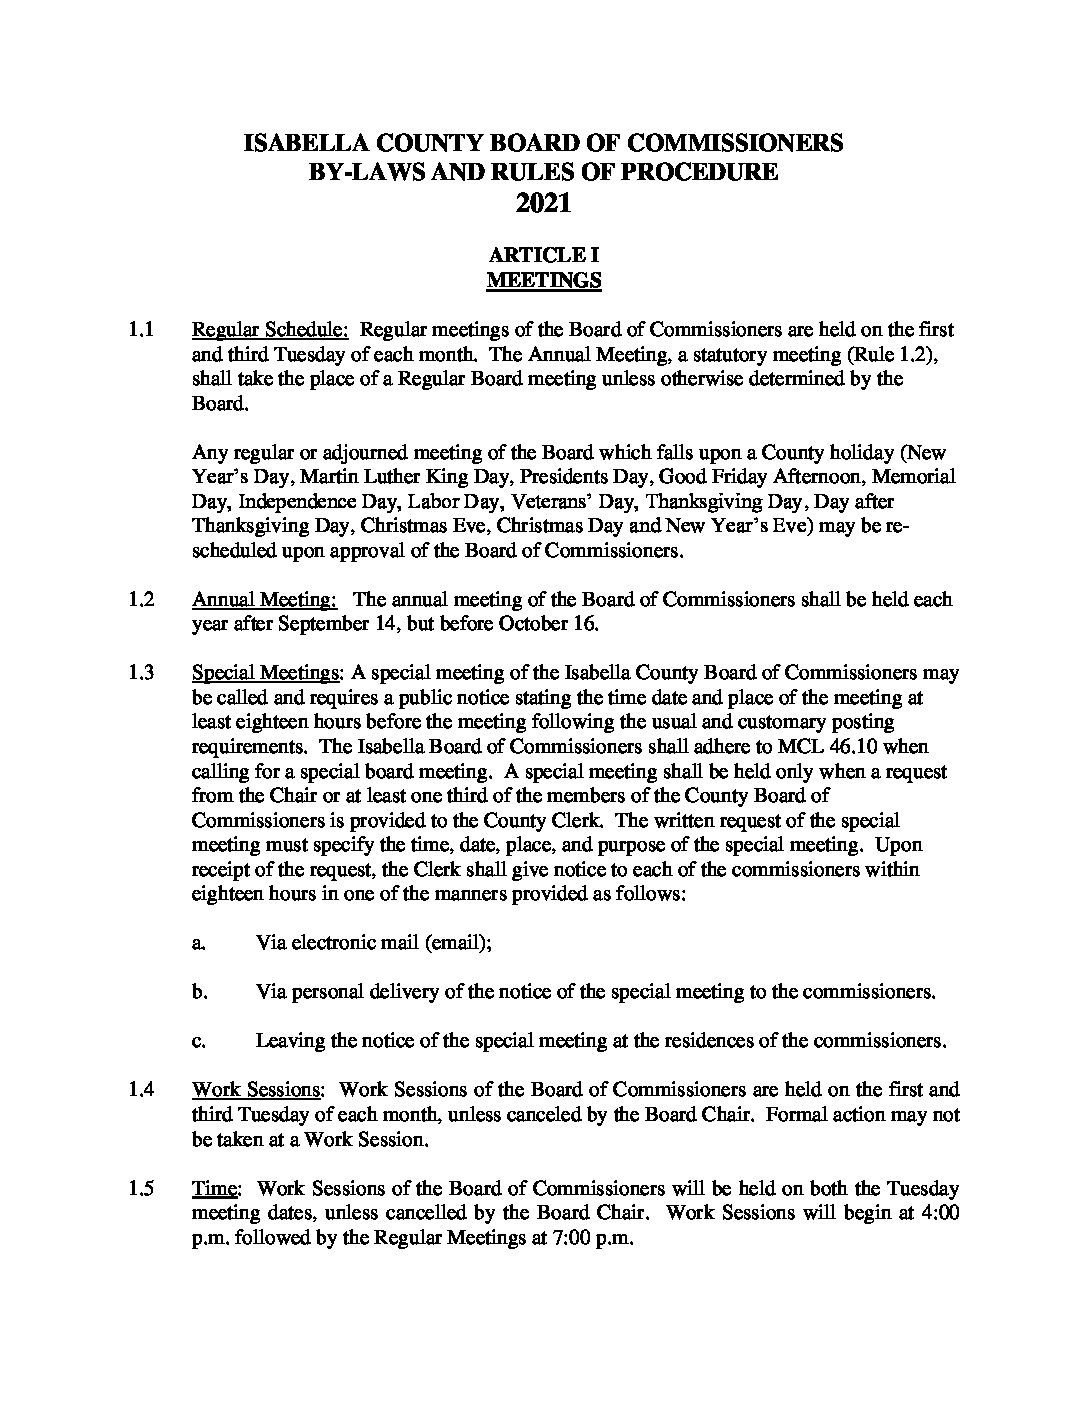 preview image of first page Isabella County Board of Commissioners By-Laws and Rules of Procedures